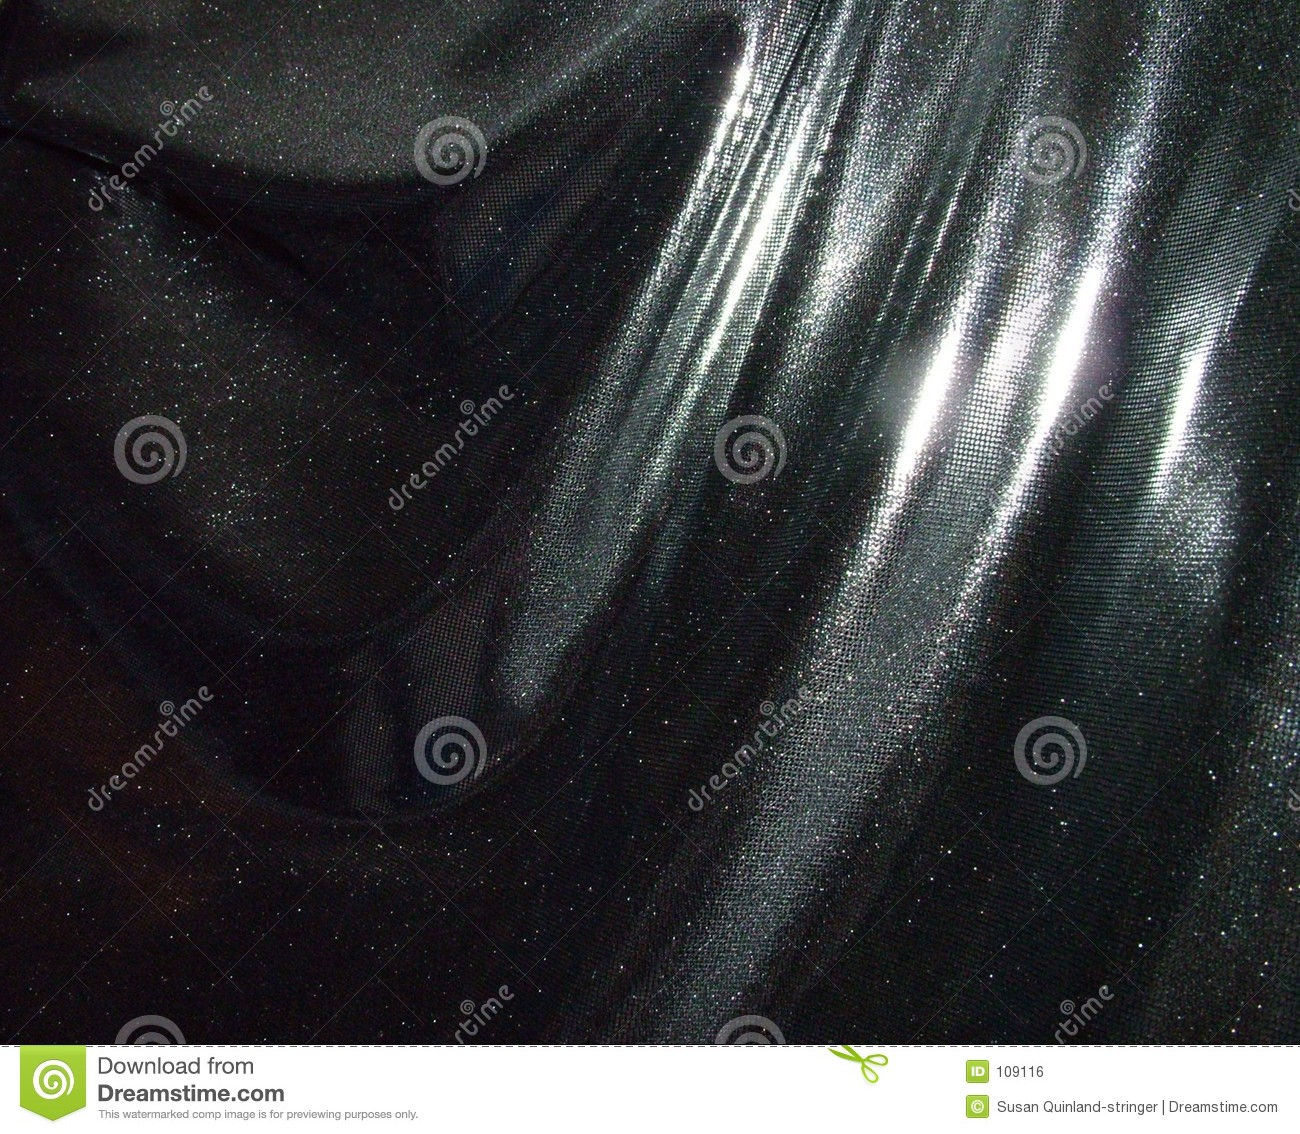 Fabric of space royalty free stock image image 109116 for 3d space fabric